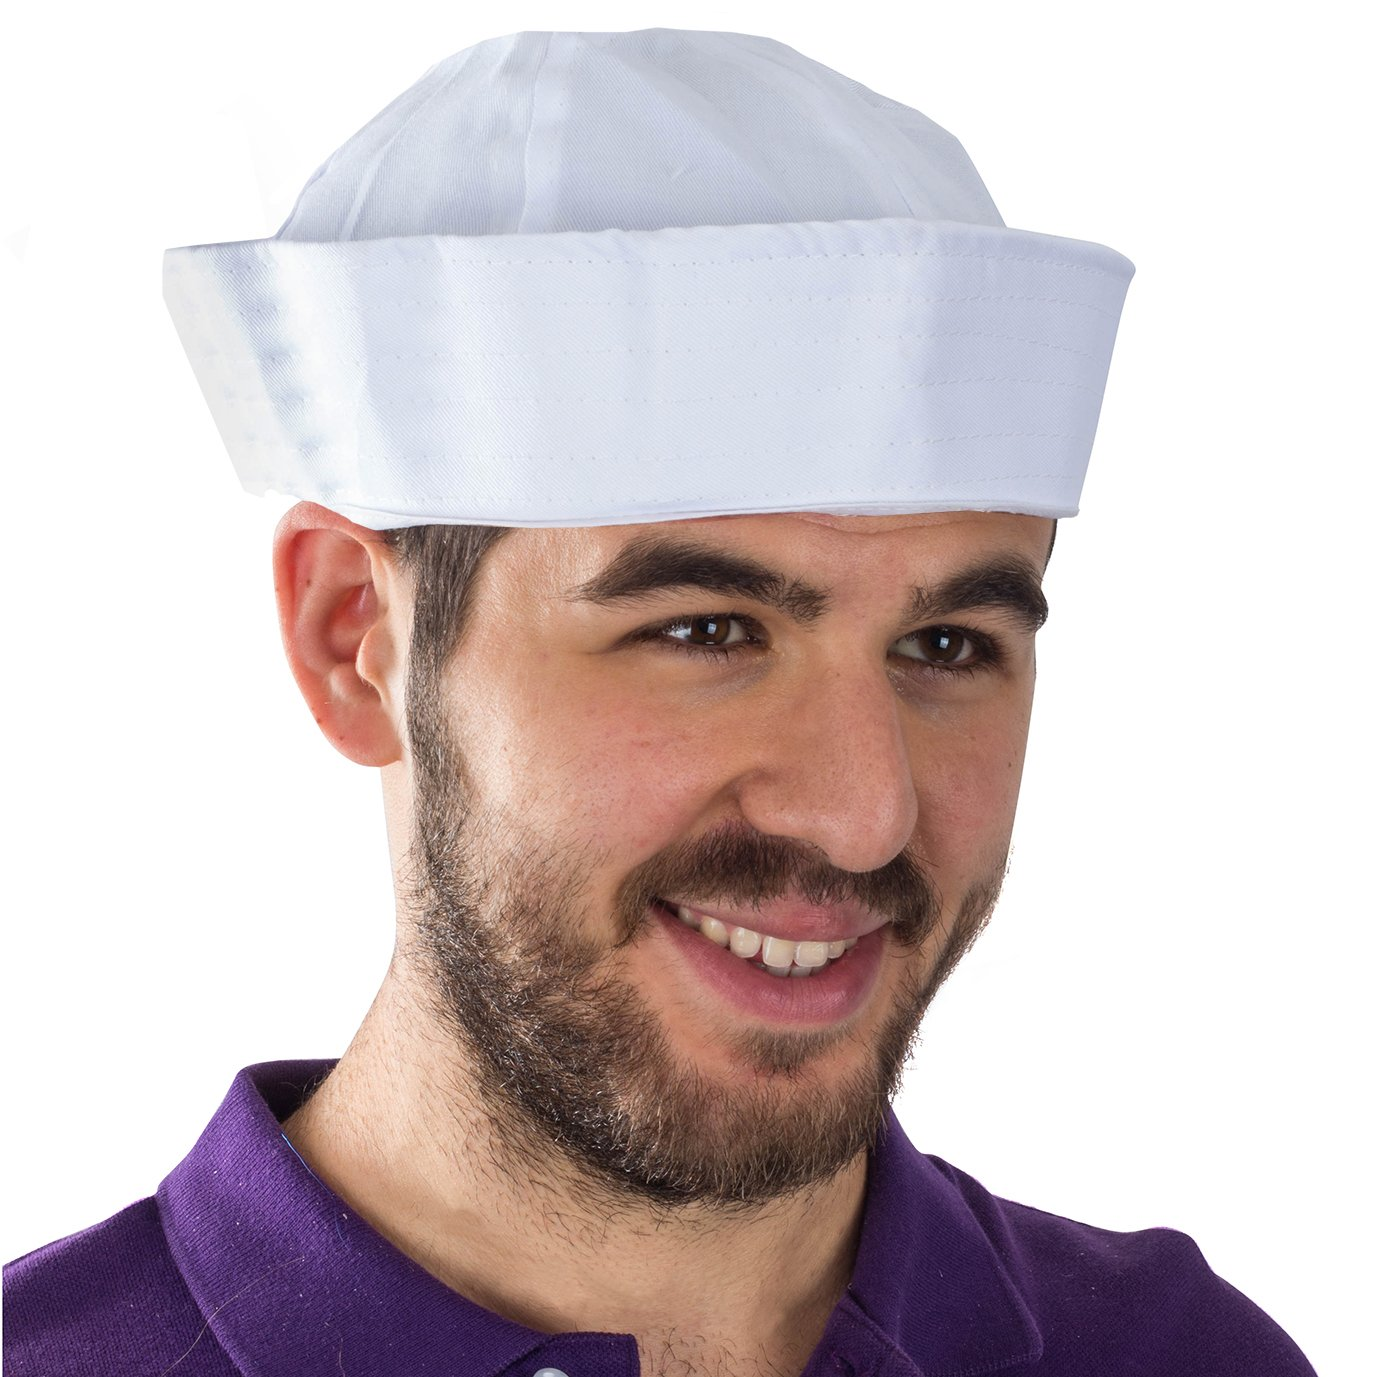 Funny Party Hats Yacht Hat - White Sailor Hats - Sailor Costume Hat by by Funny Party Hats (Image #3)